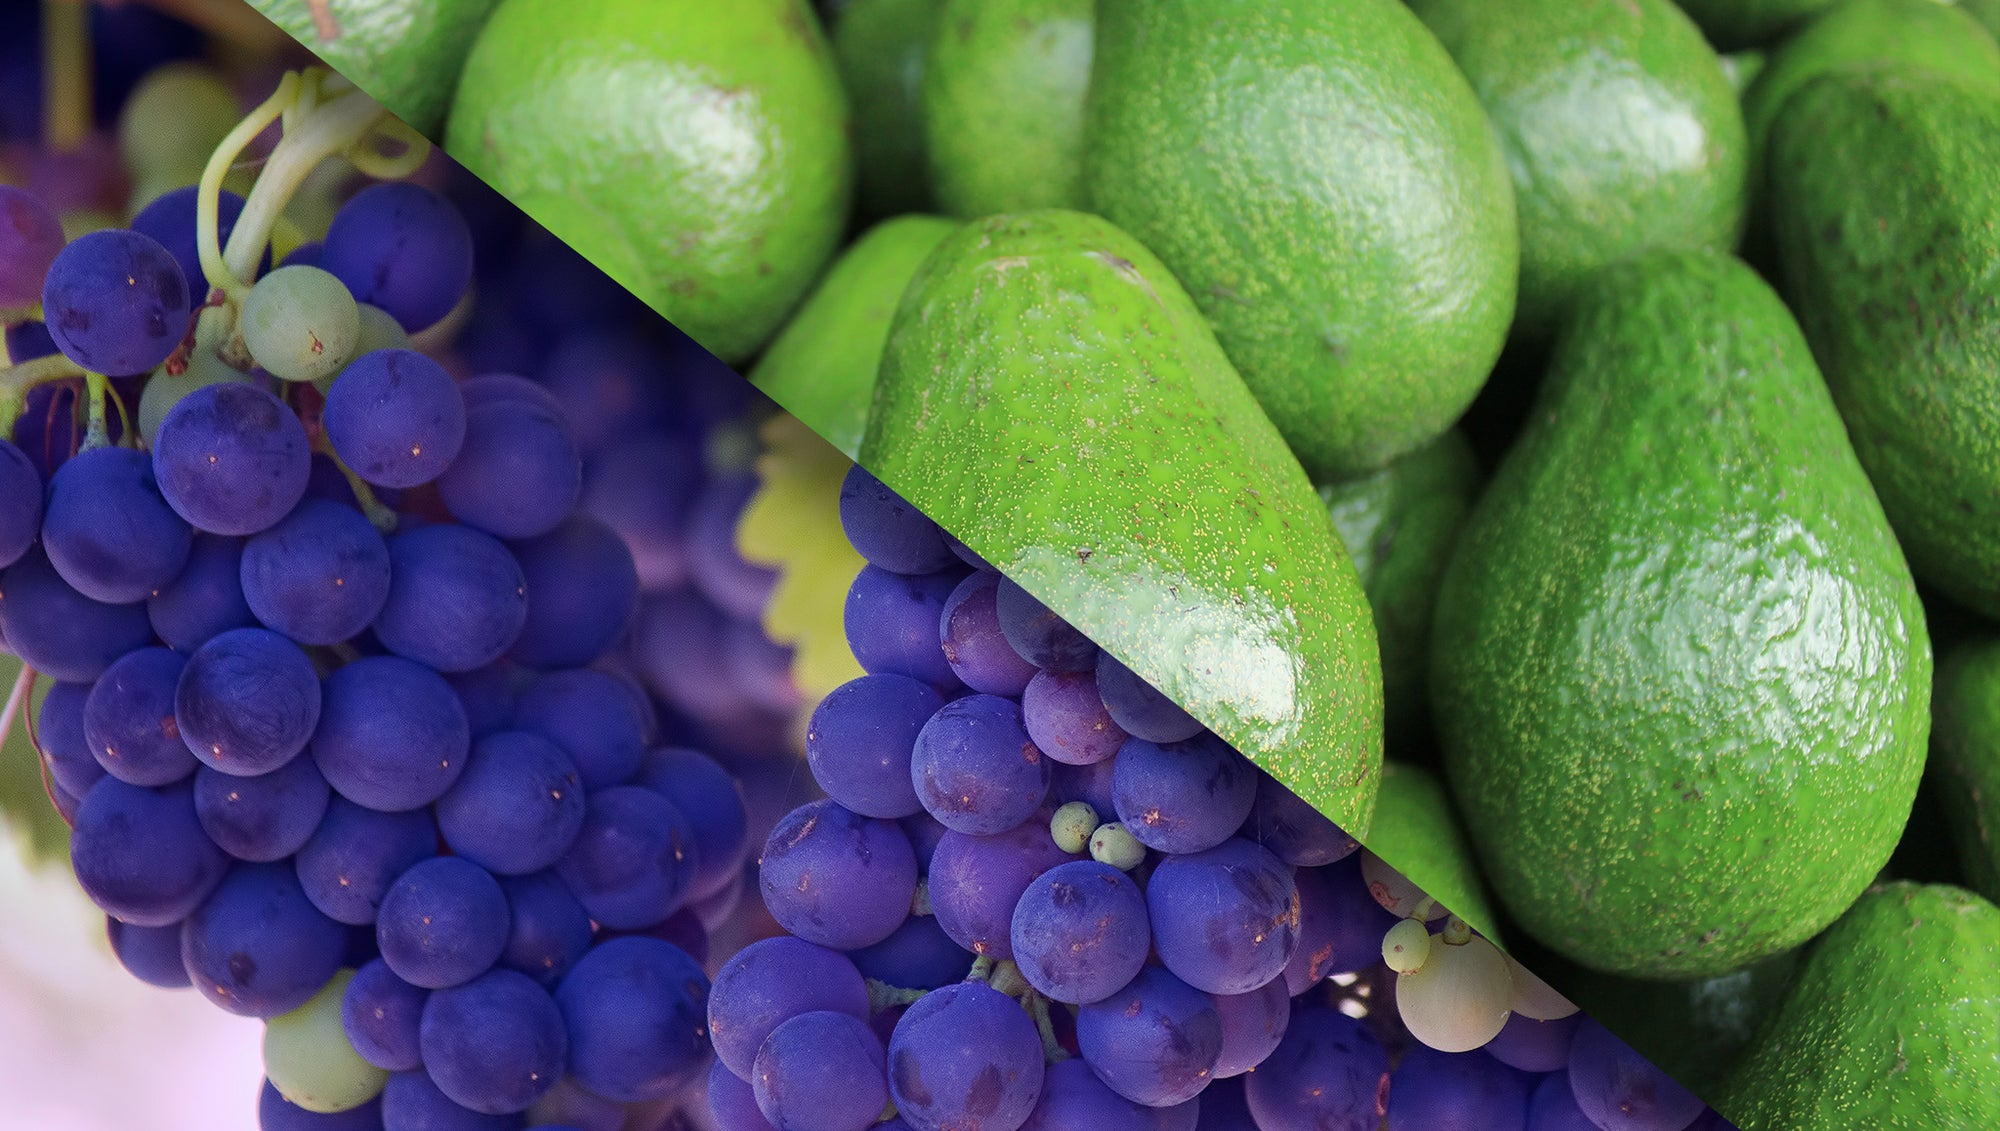 The Effects of Avocados and Red Wine on Inflammation